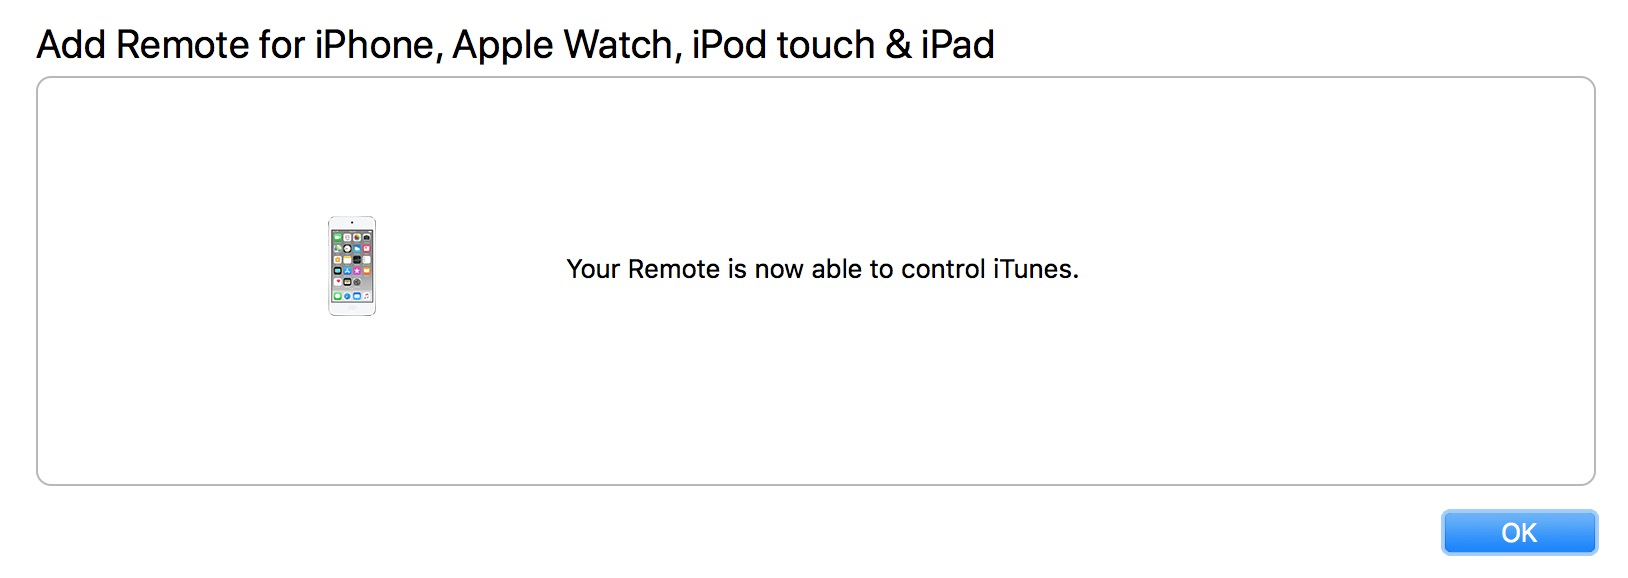 Remote Setup Finished with iTunes on the Mac showing a Success dialog